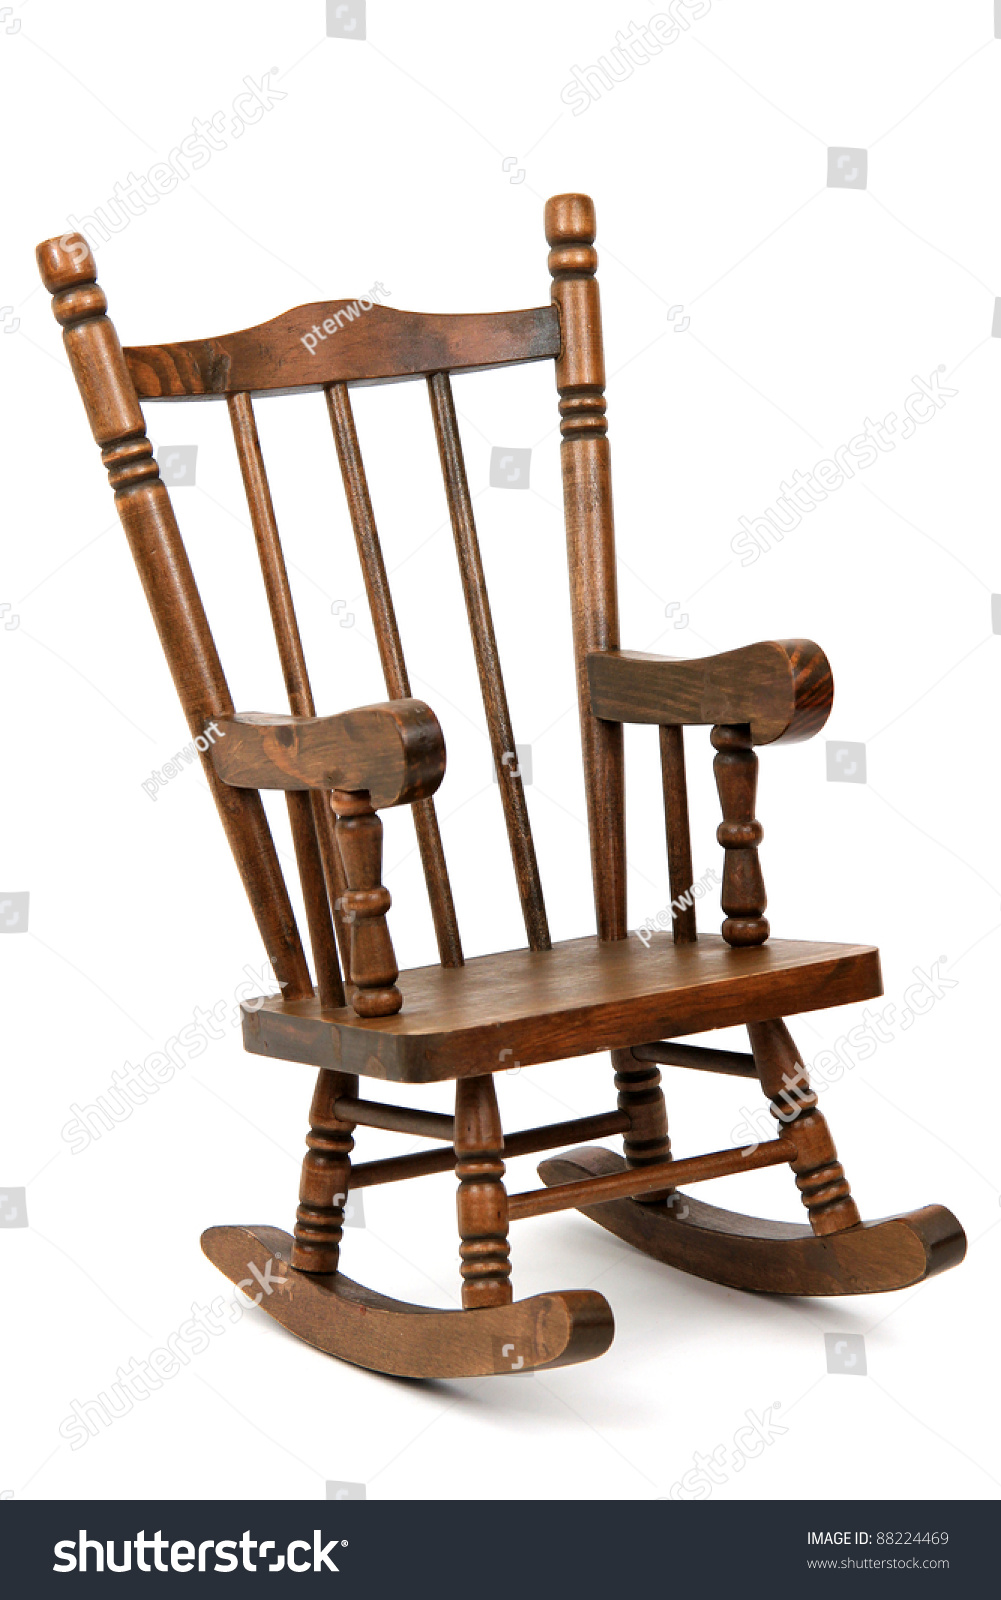 Old wood rocking chair - Old Wooden Rocking Chair On White Background